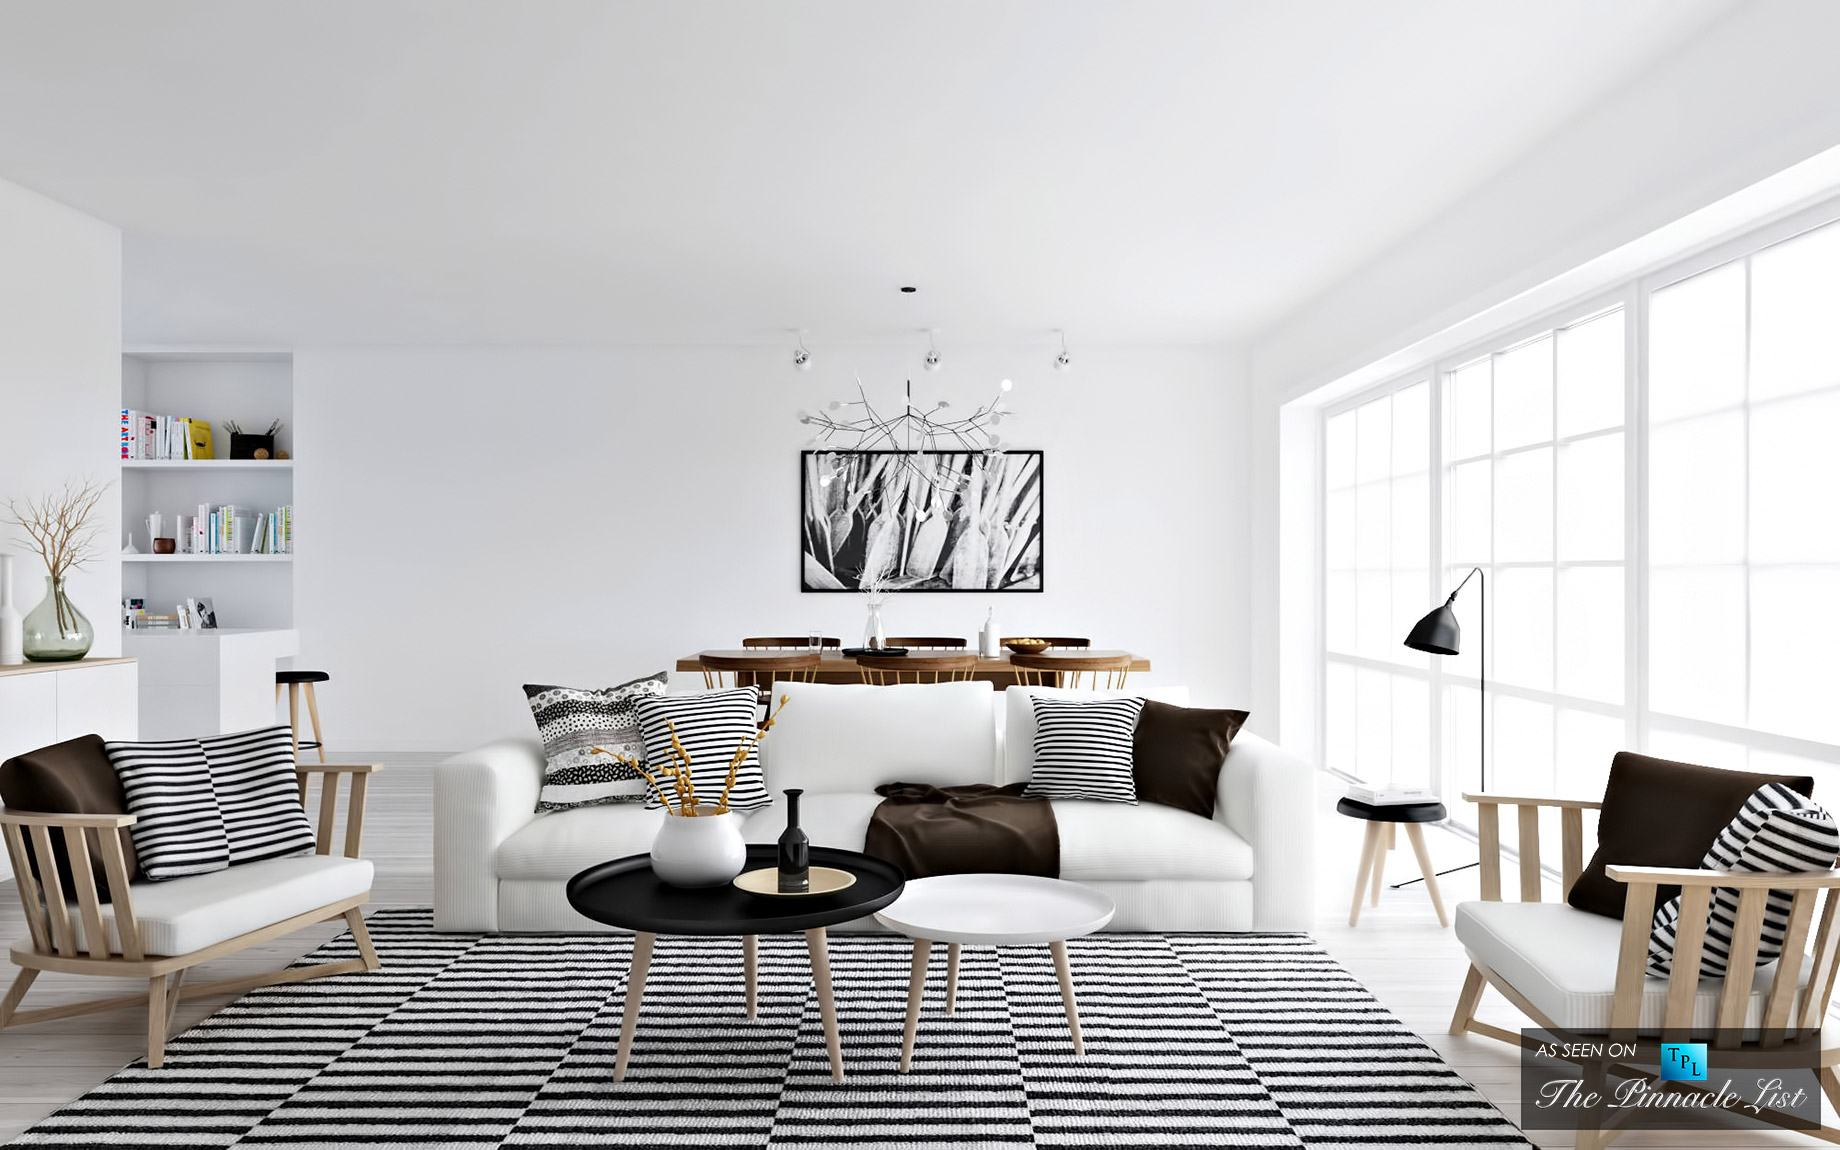 Scandinavian Super White - Luxury West Coast Design Trends that Make Your Home Into a Multicultural Melting Pot